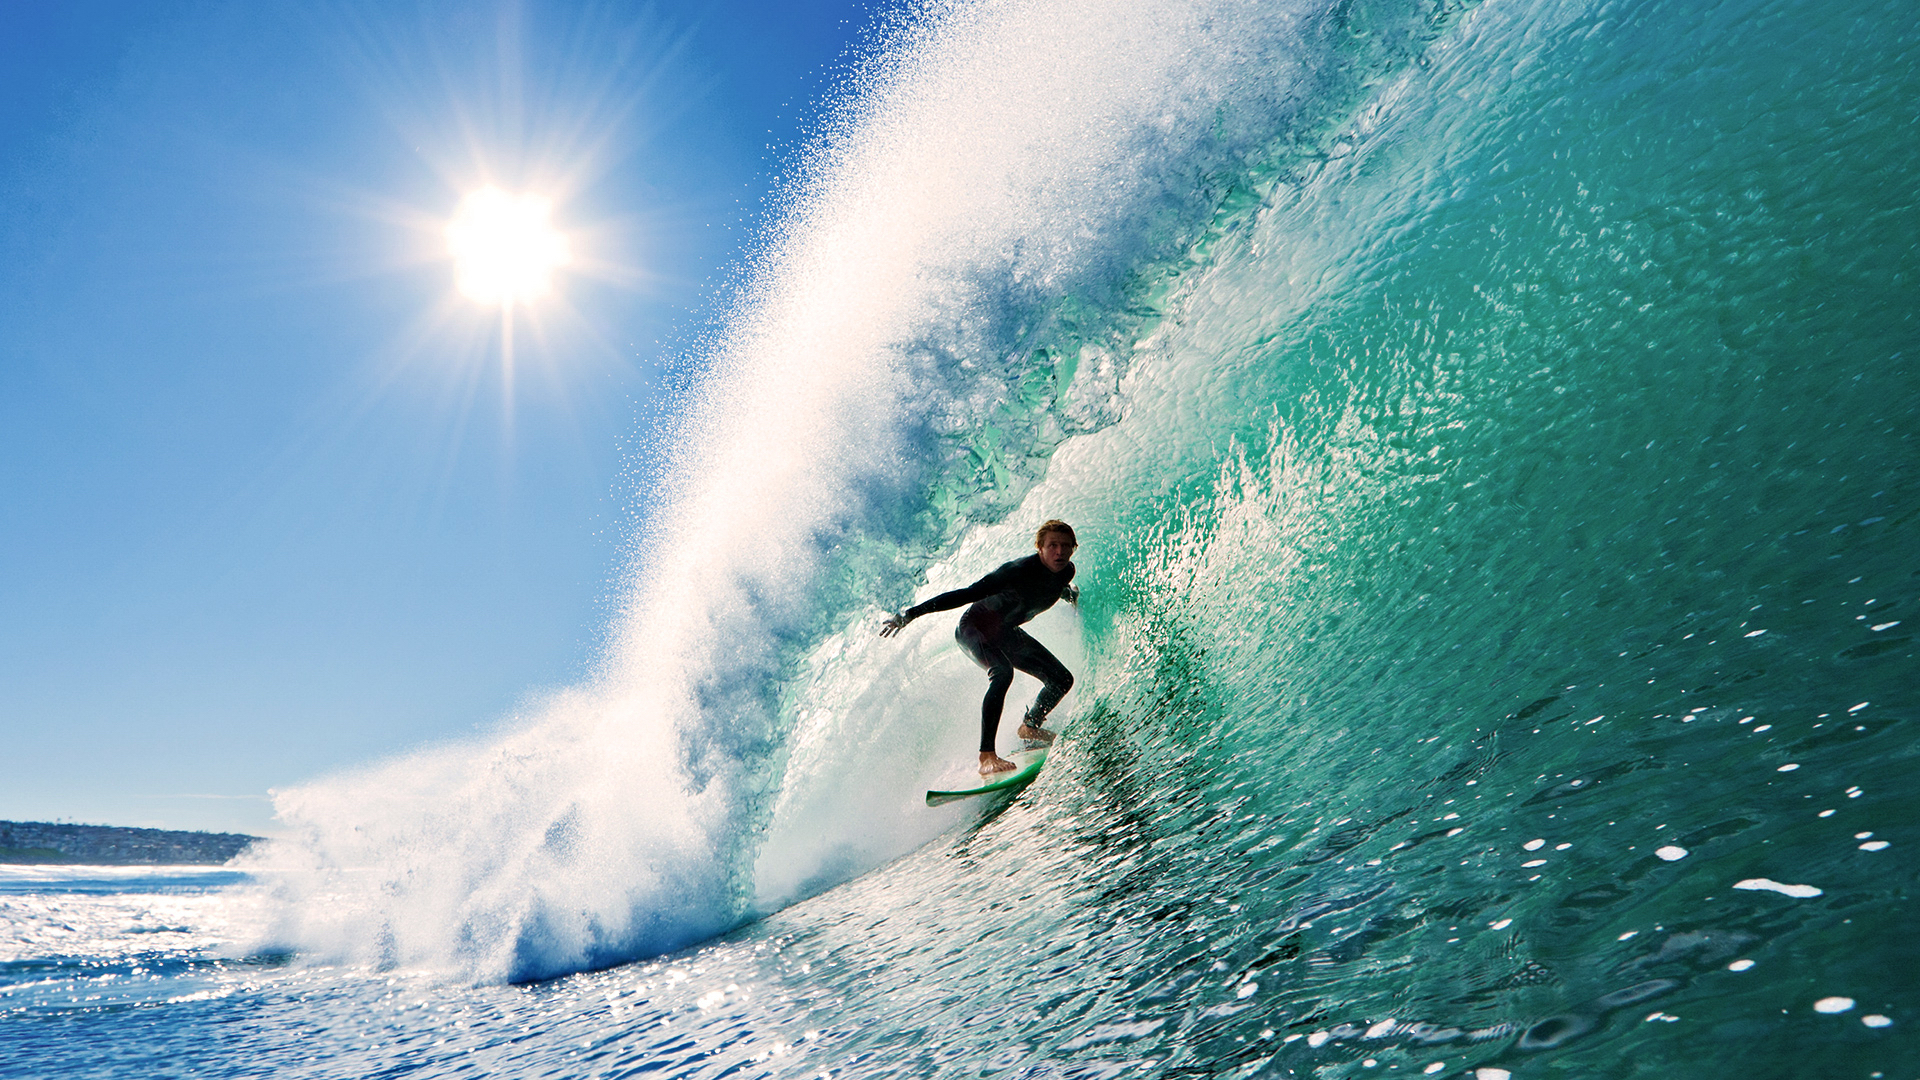 surfing hd wallpapers - wallpaper, high definition, high quality